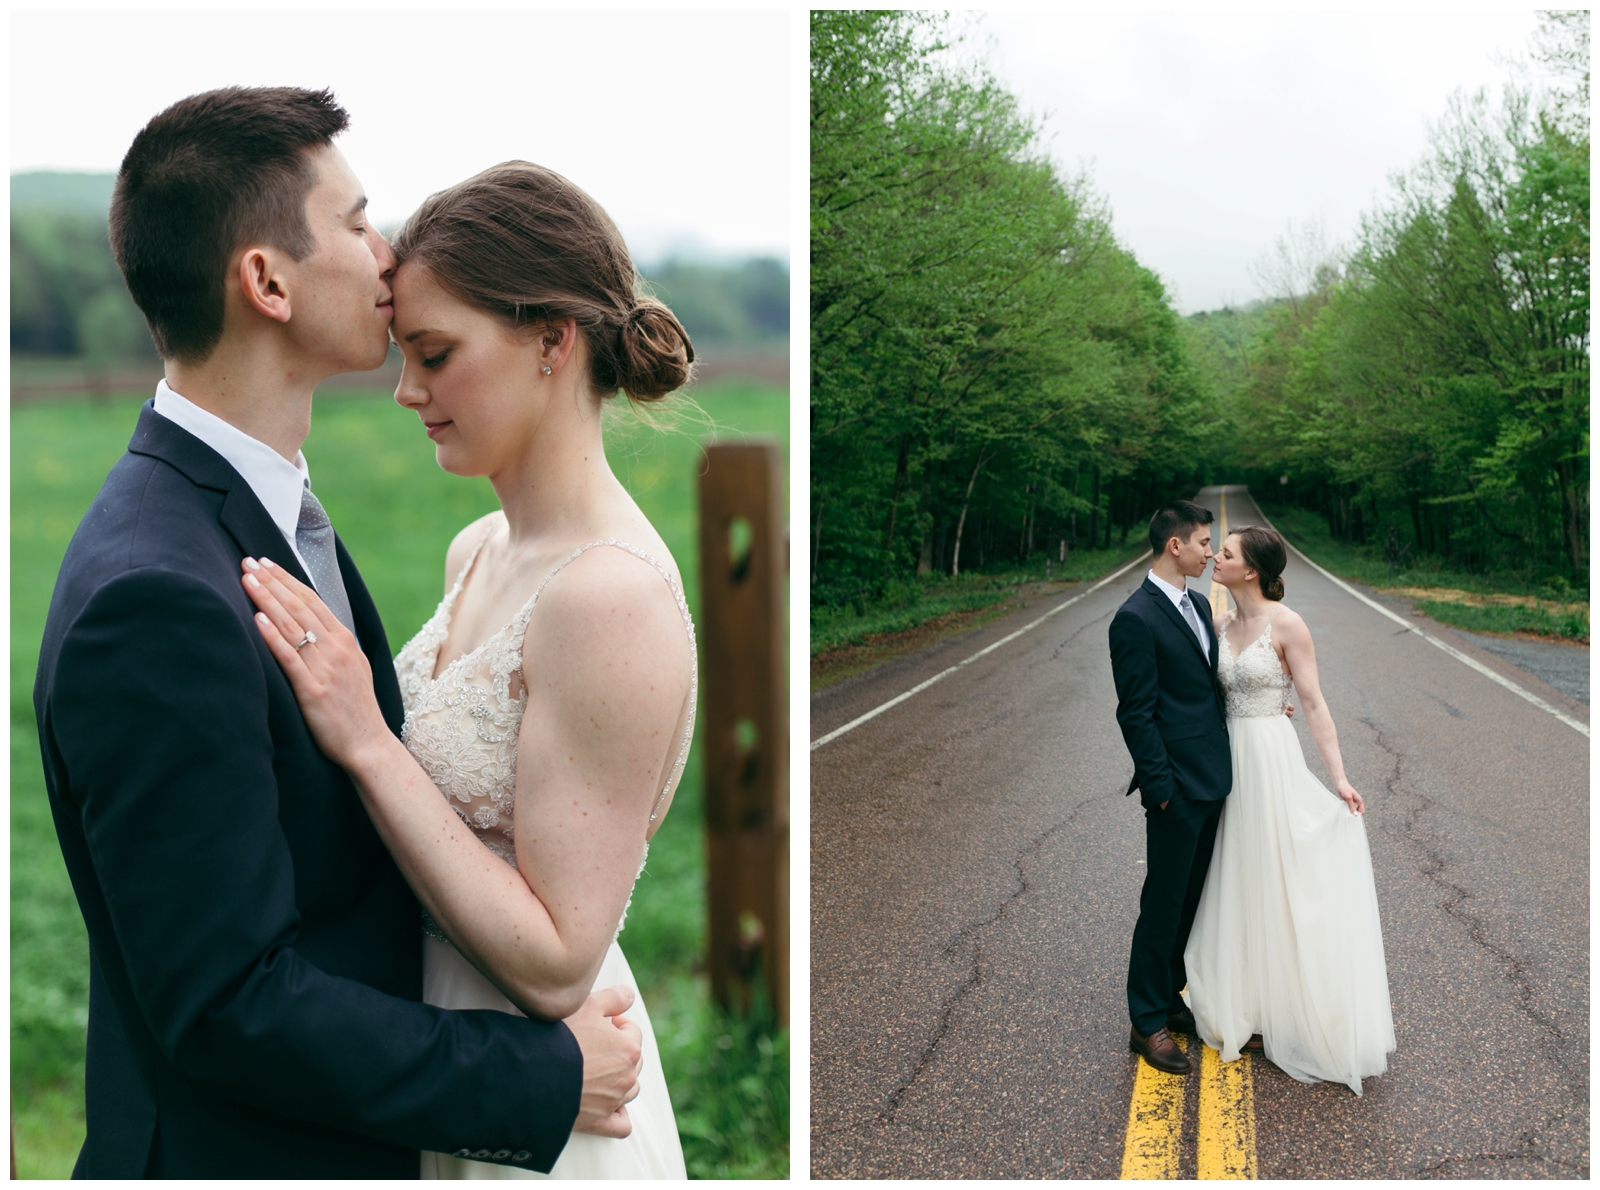 Vermont-Elopement-Topnotch-Stowe-Wedding-Bailey-Q-Photo-Boston-Wedding-Photographer-026.jpg